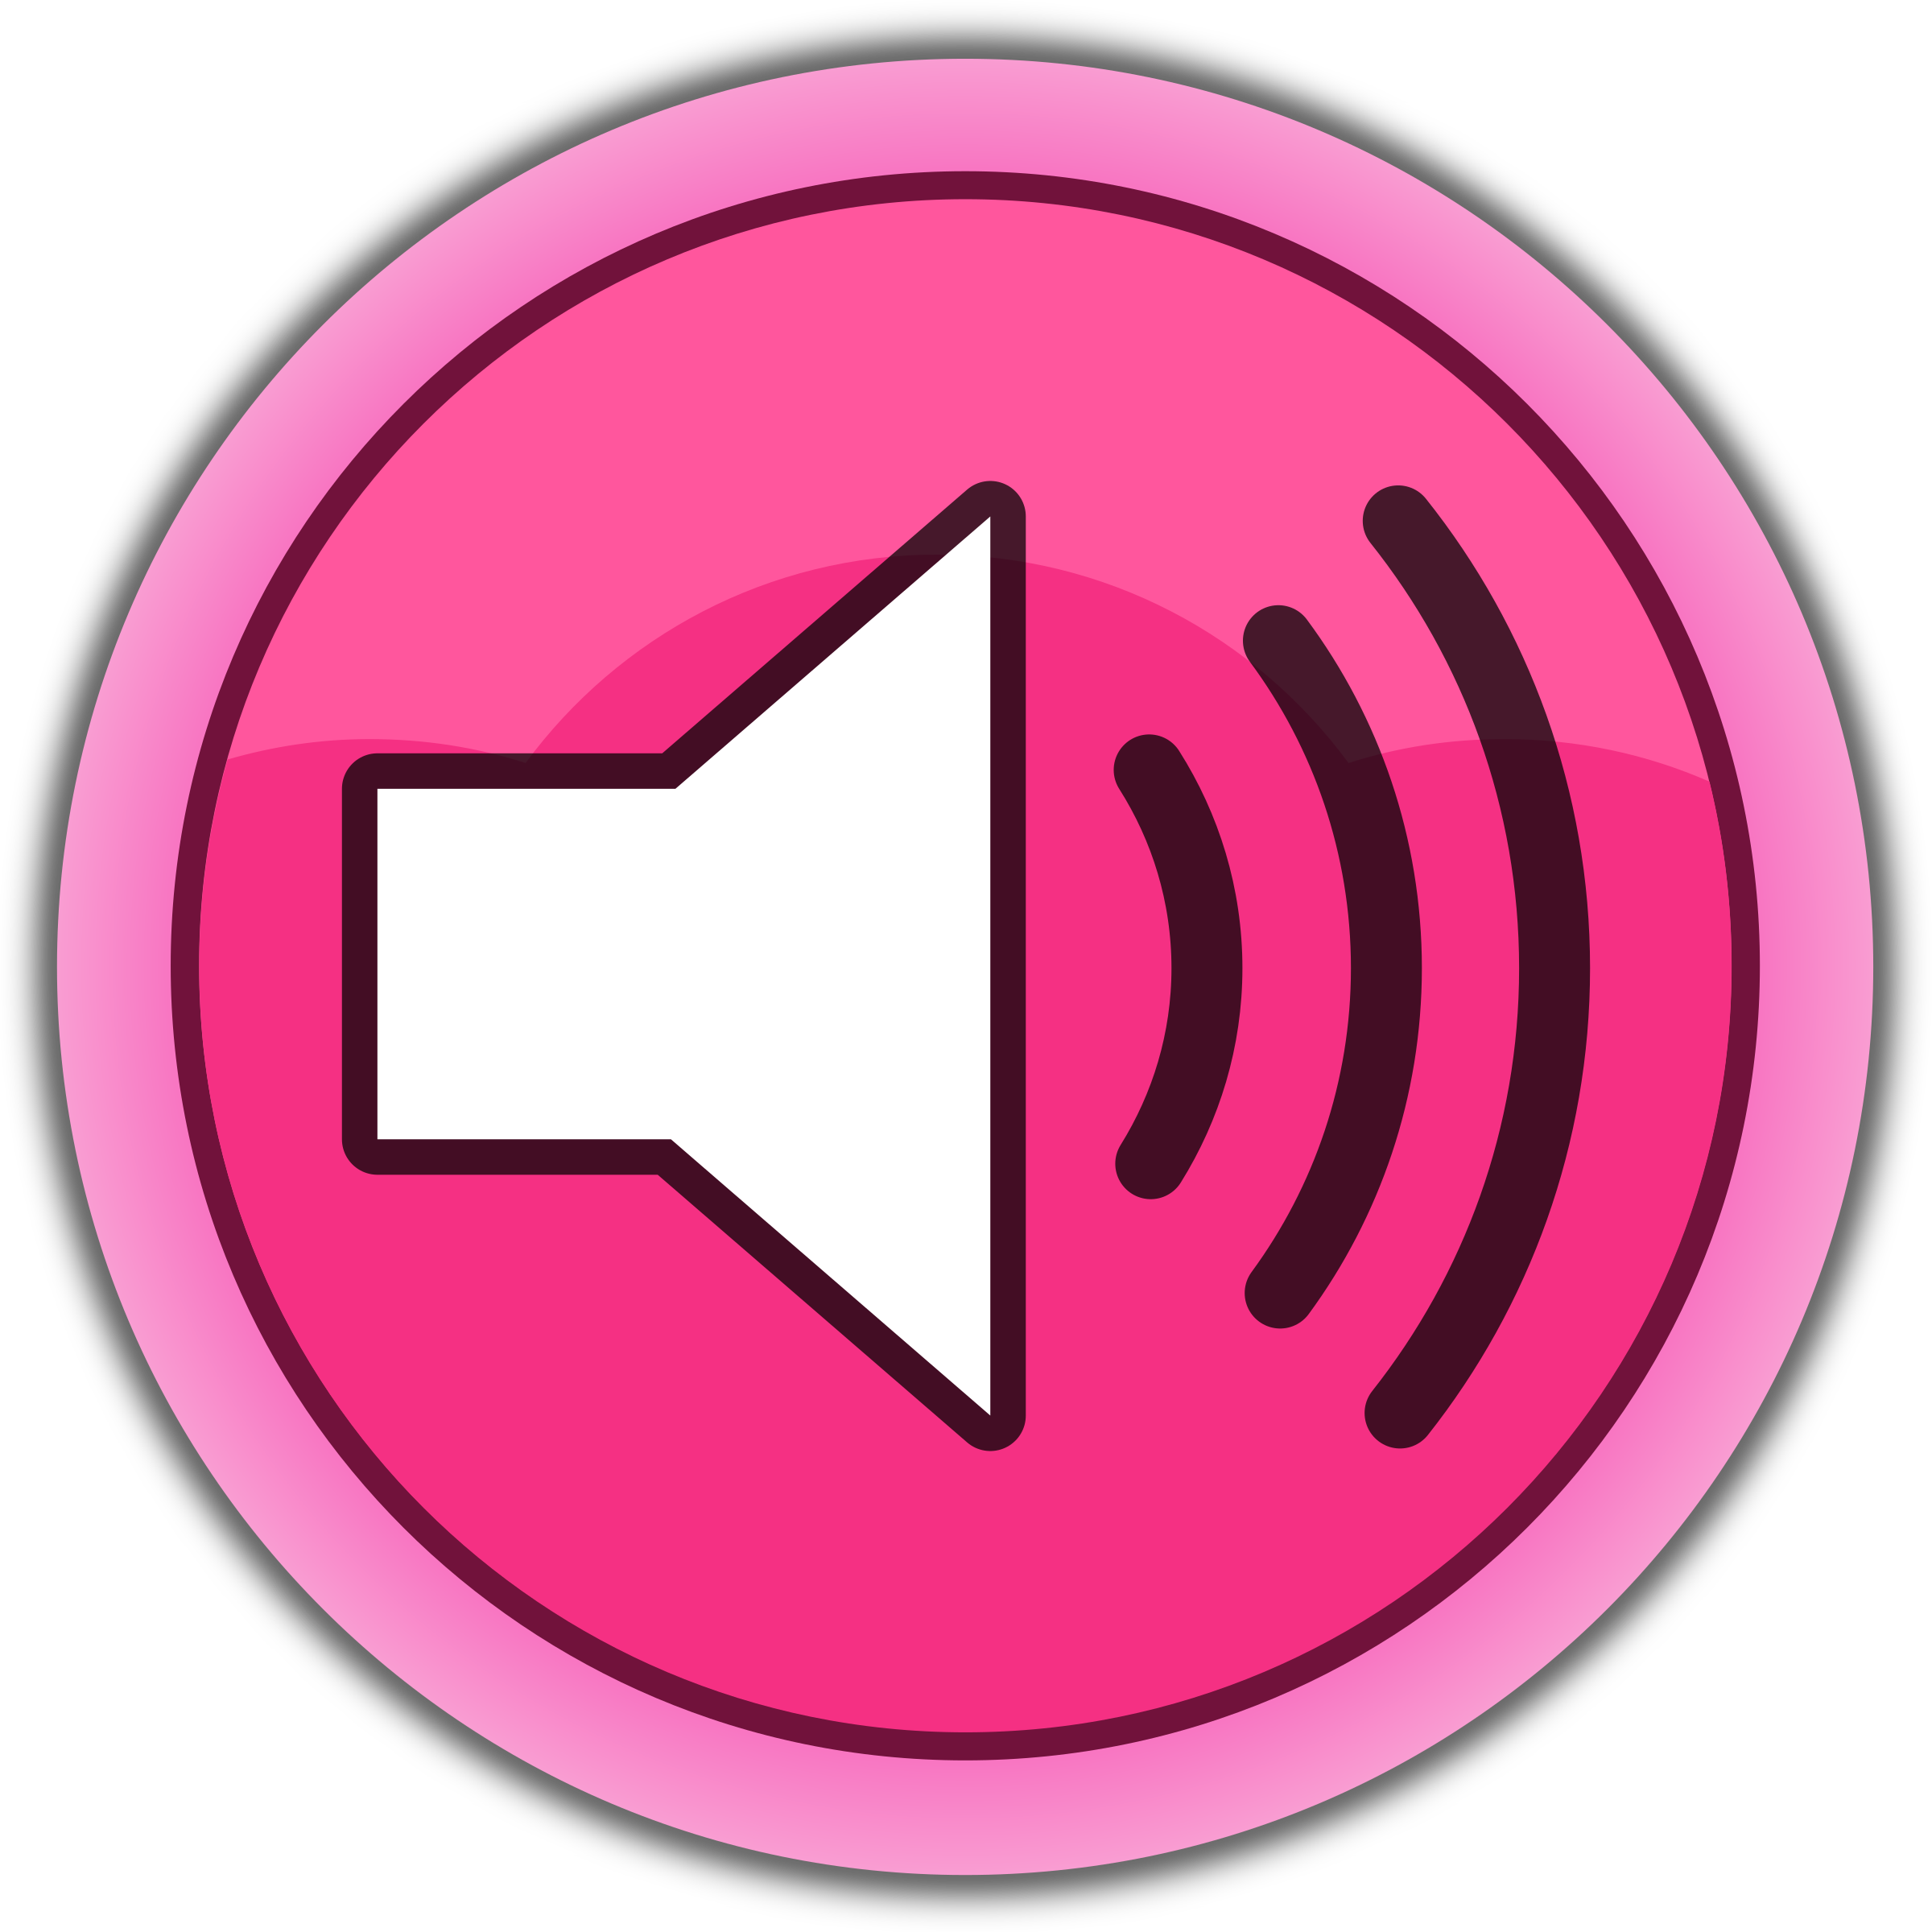 Sound Button Clipart.